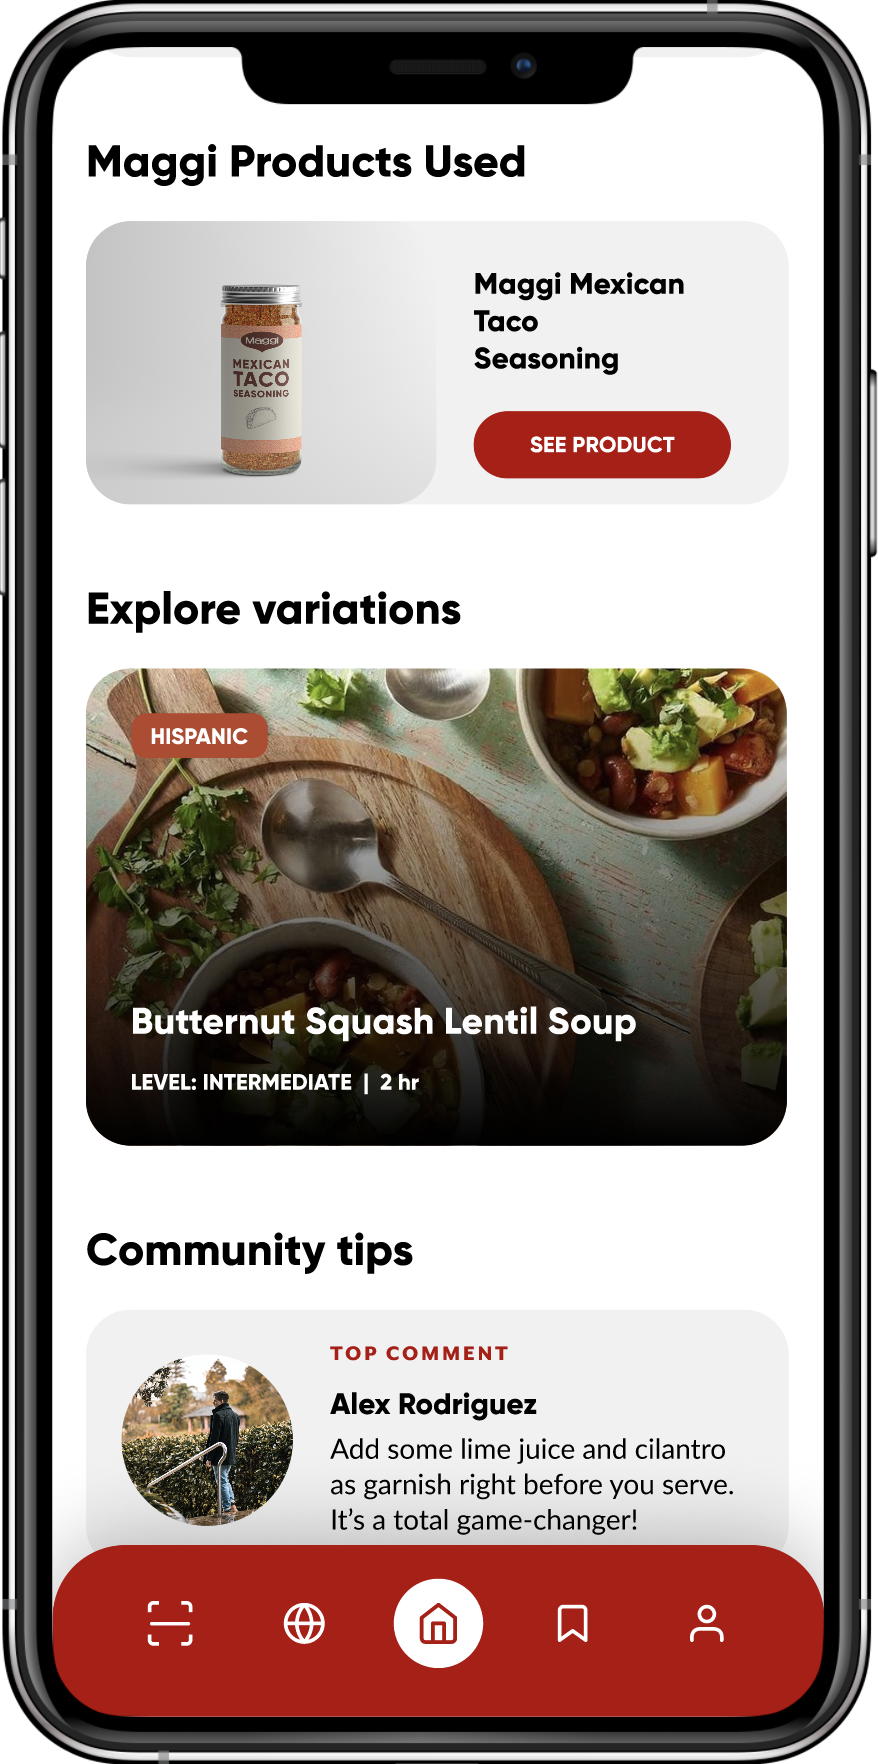 Bottom page of a food recipe on mobile app showing community tips and suggested recipes